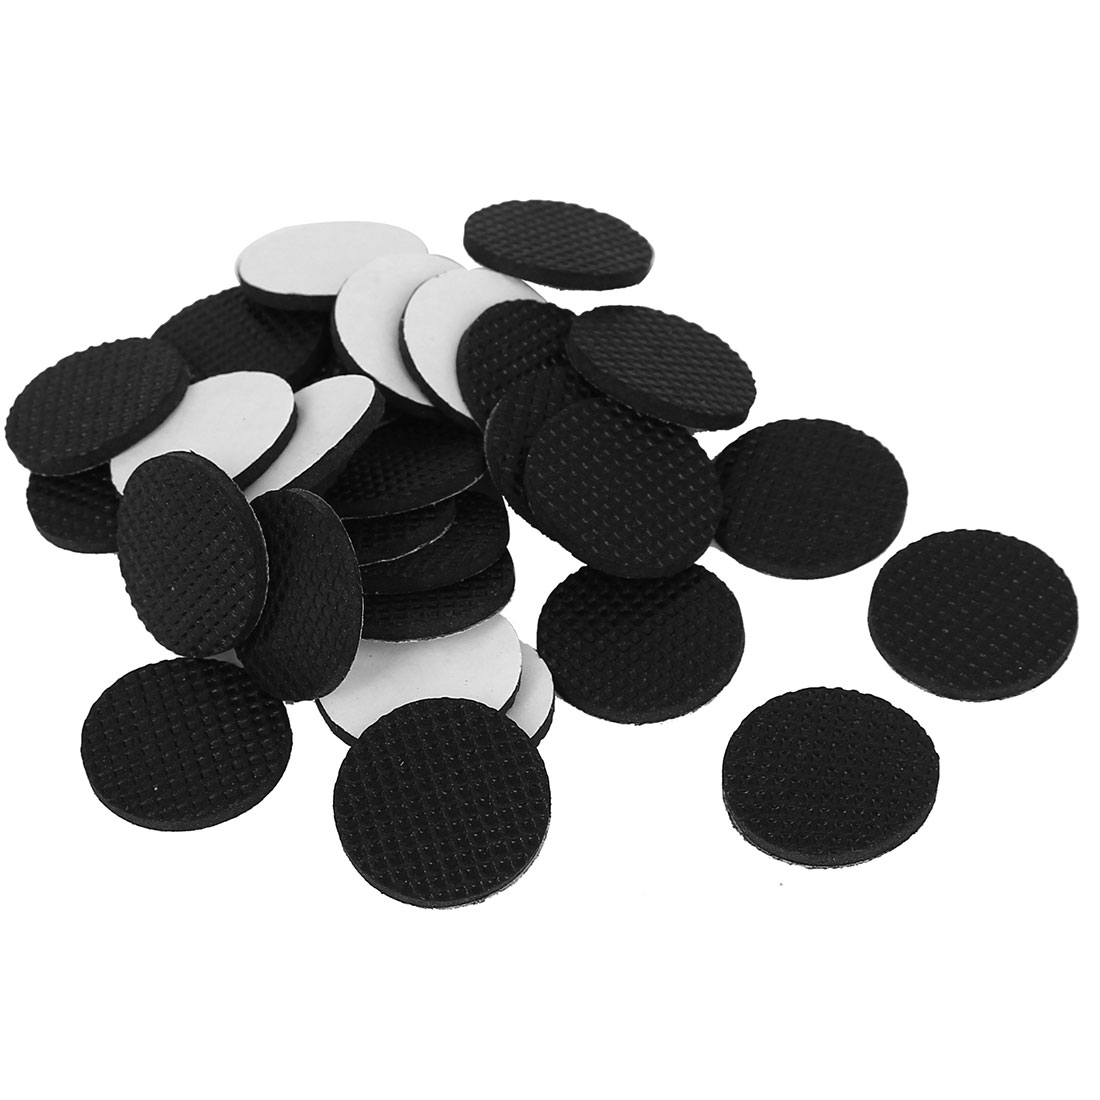 Round Shaped Adhesive Felt Pad 30 Pcs for Table Chair Furniture Leg